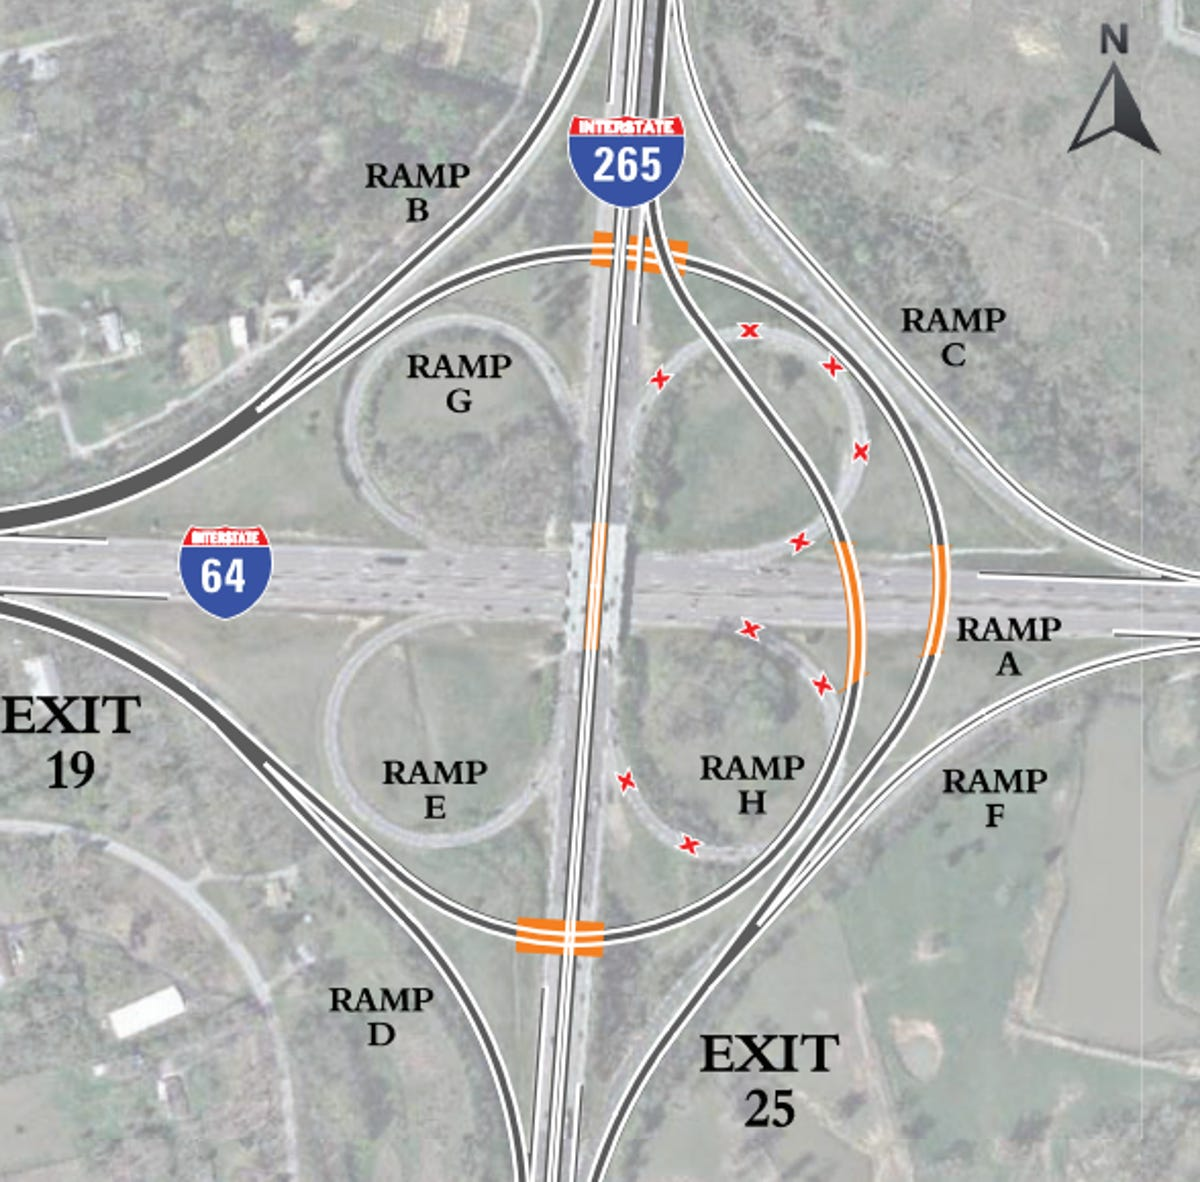 Gene Snyder interchange with I-64 in Louisville to be fixed on kentucky outline map, bourbon old map, ohio county map, united states map, kentucky interstate map, kentucky park map, interactive kentucky map, kentucky street map, kentucky vegetation map, kentucky drainage map, murray sea map, kentucky flash, kentucky railway map, kentucky county map, kentucky trail map, kentucky lake map, kentucky transport map, ohio kentucky tennessee map, 4th grade tennessee map, kentucky travel map,